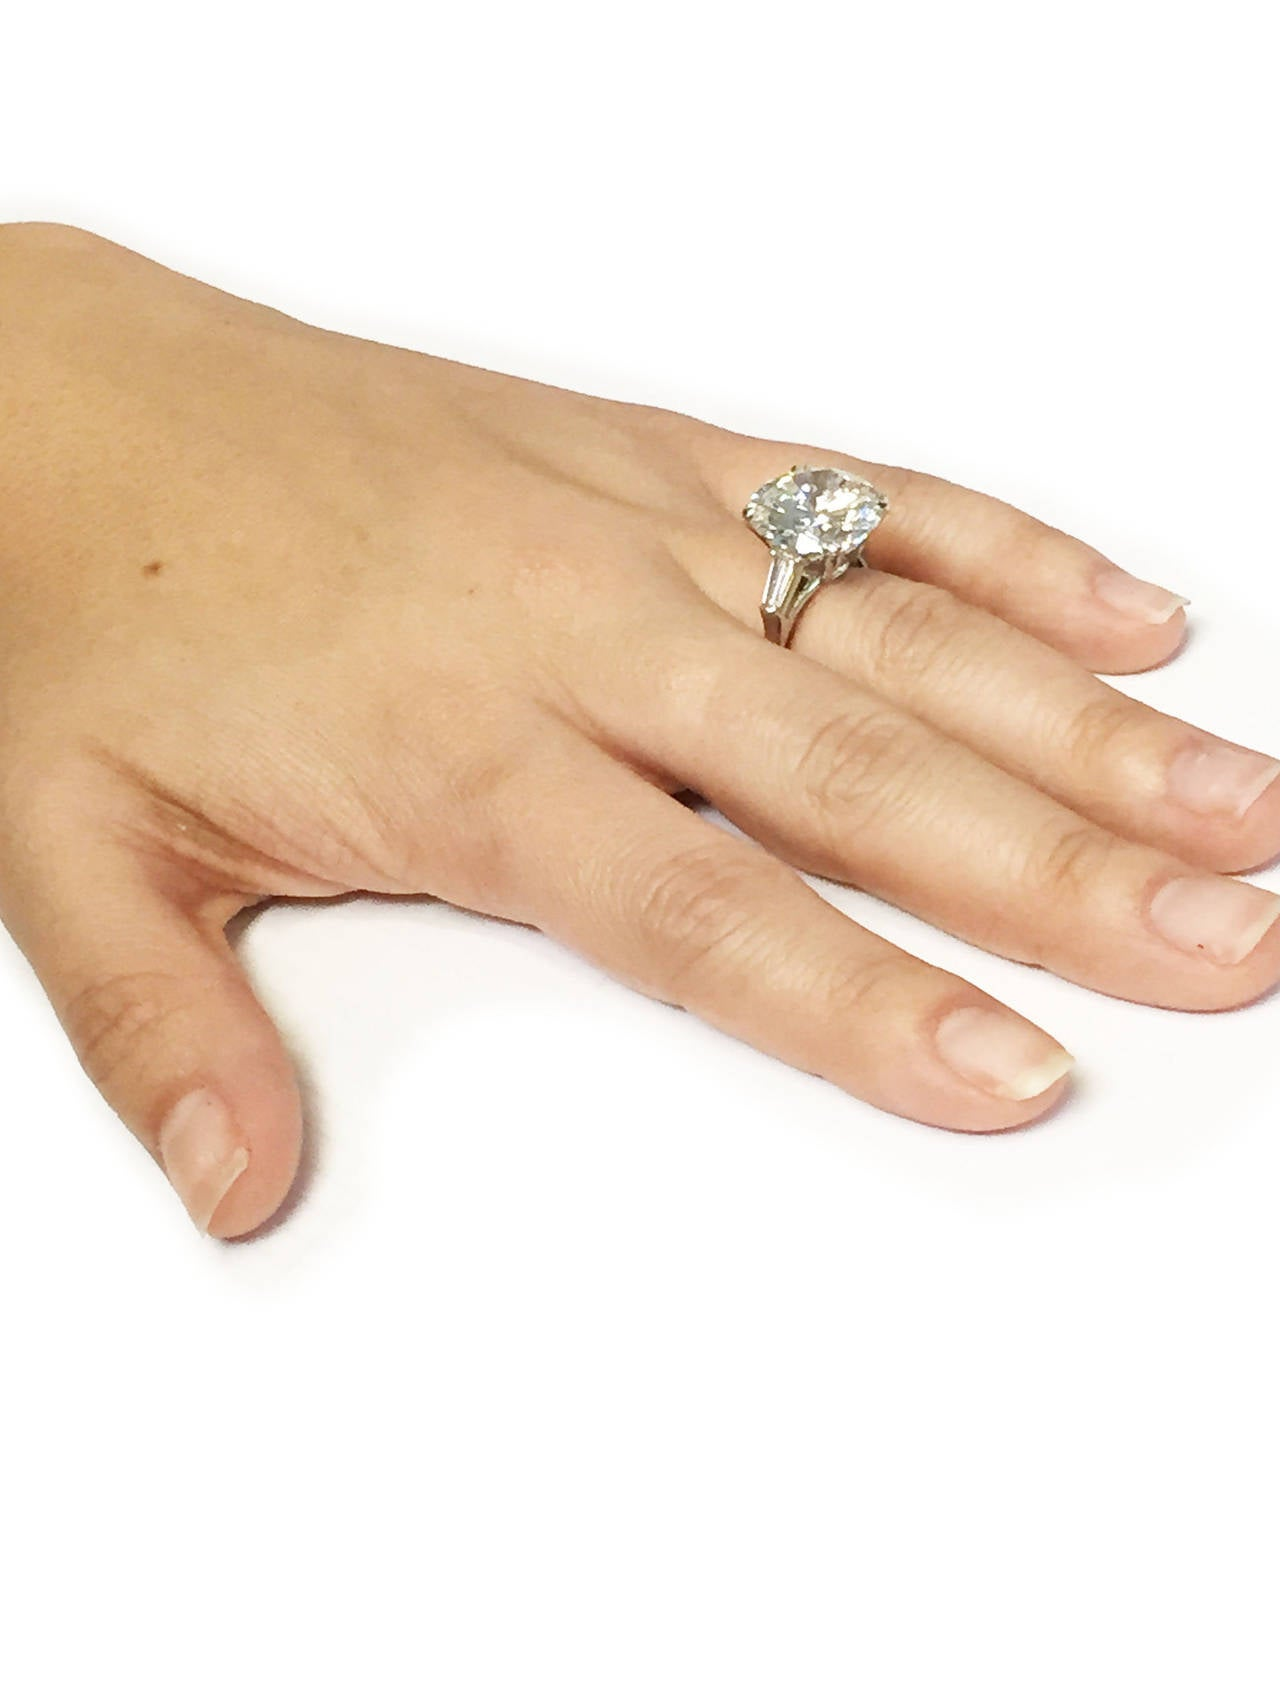 Harry Winston 9.31 Carat Diamond Platinum Ring In Excellent Condition For Sale In New York, NY